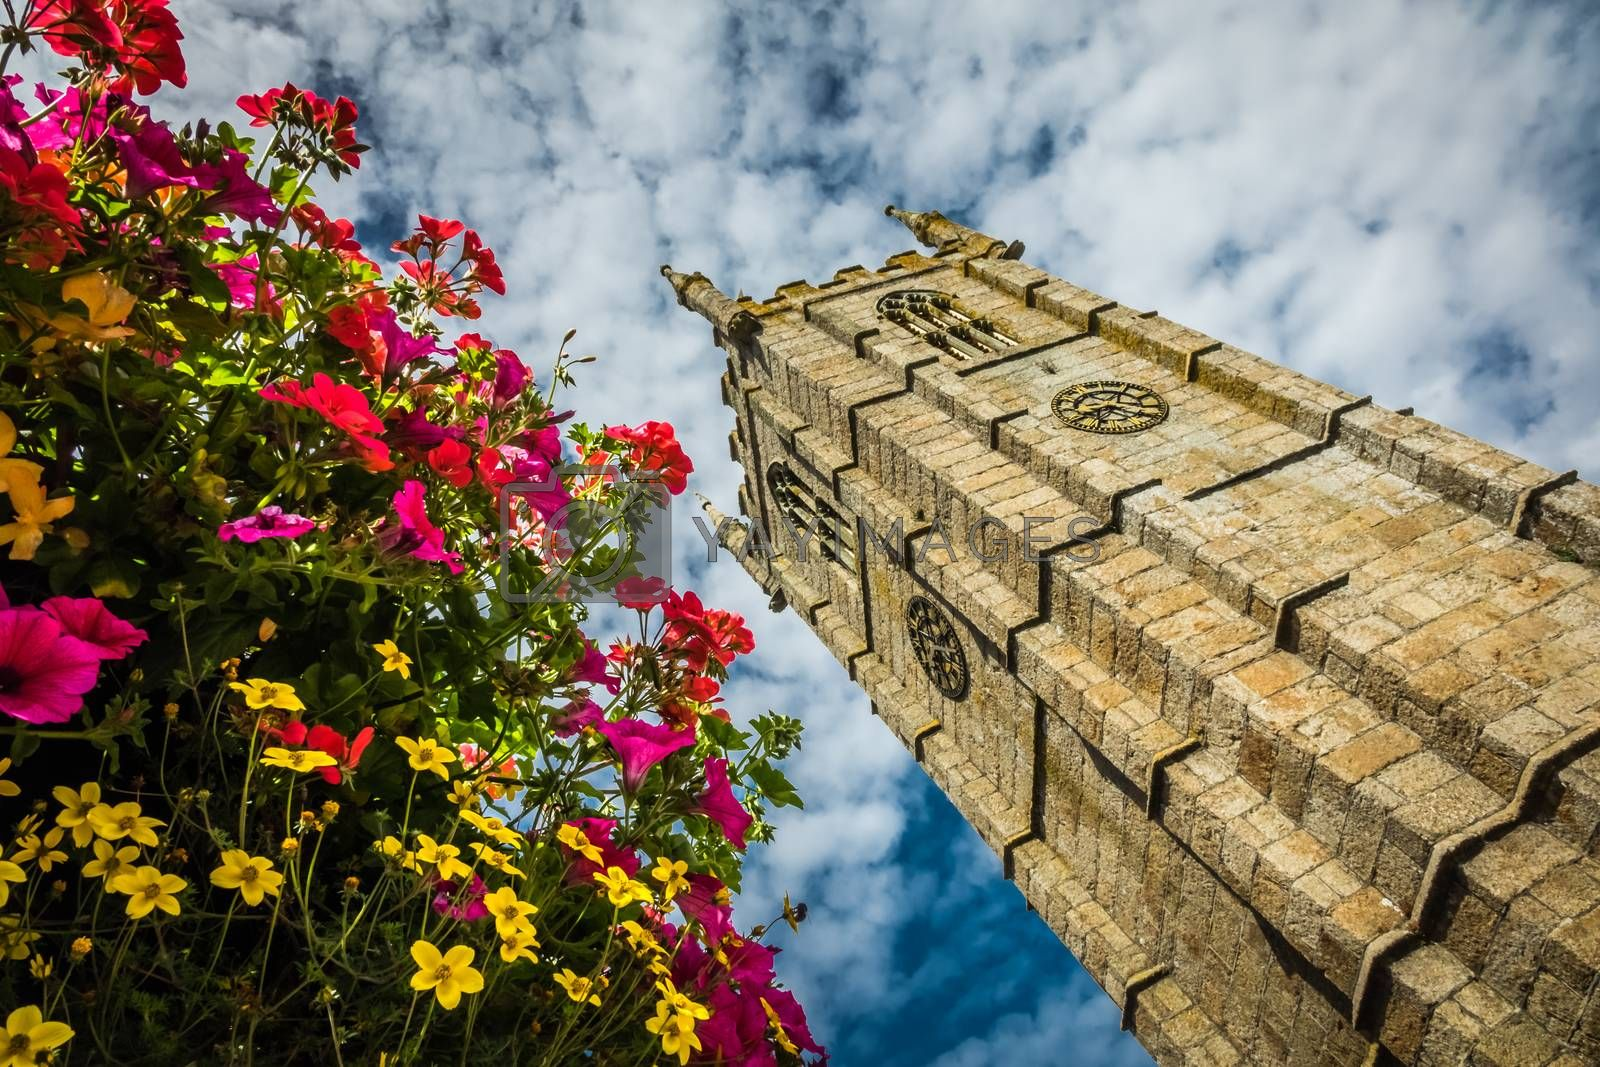 Clock tower of St Ia's Church in St. Ives, Cornwall, England